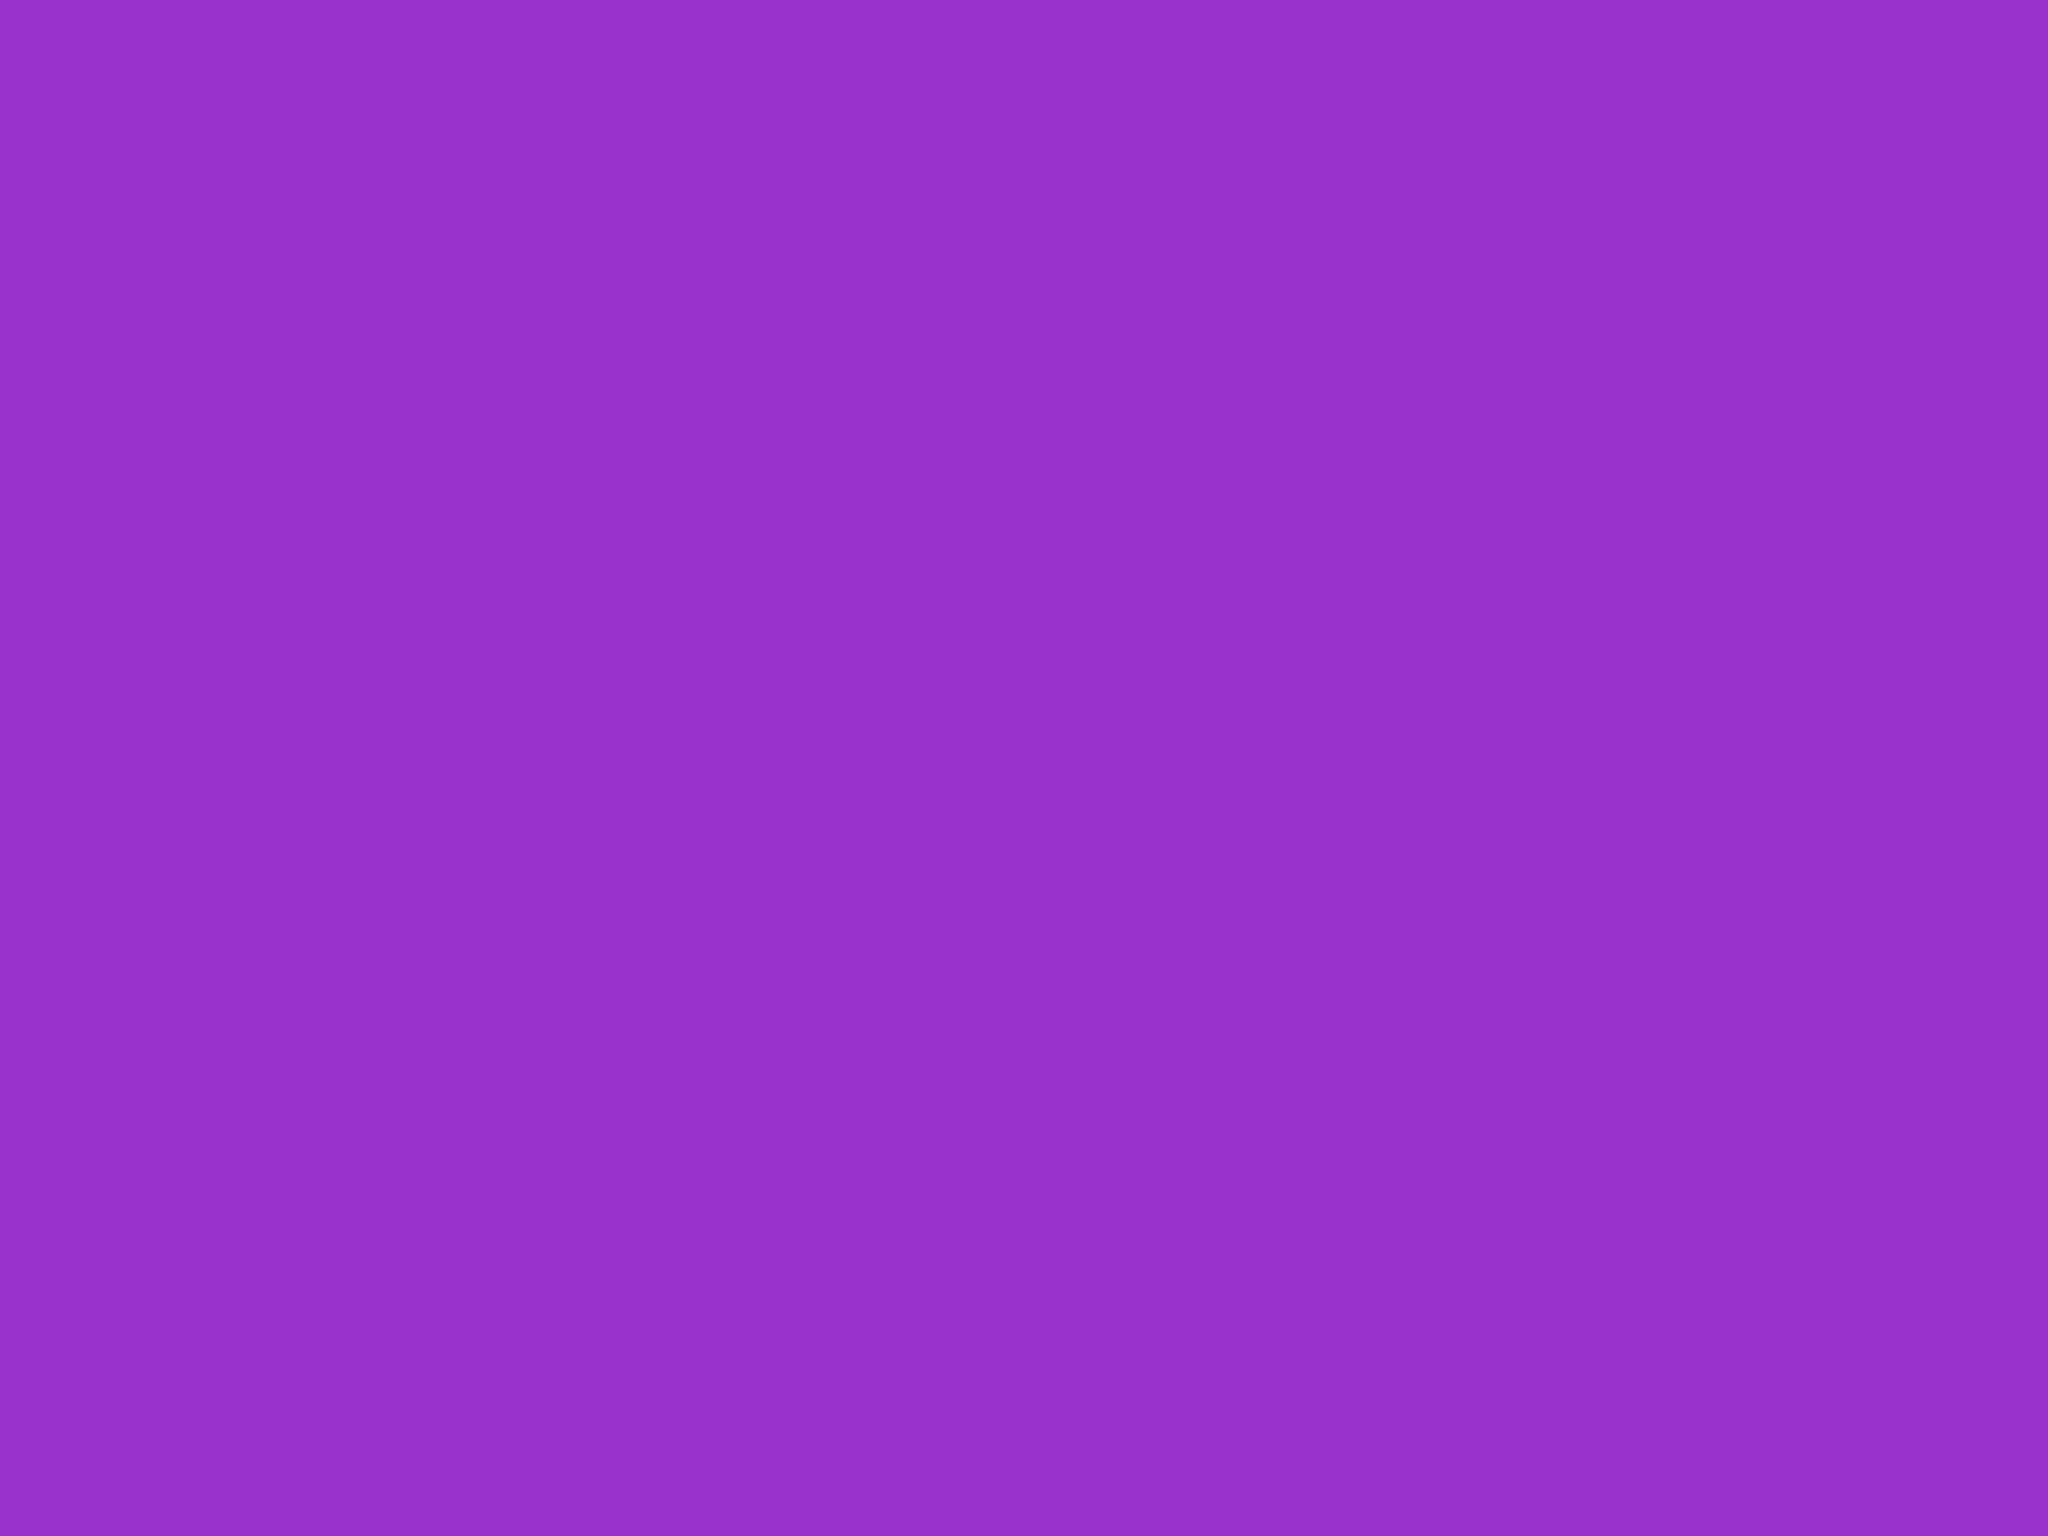 2048x1536 Dark Orchid Solid Color Background